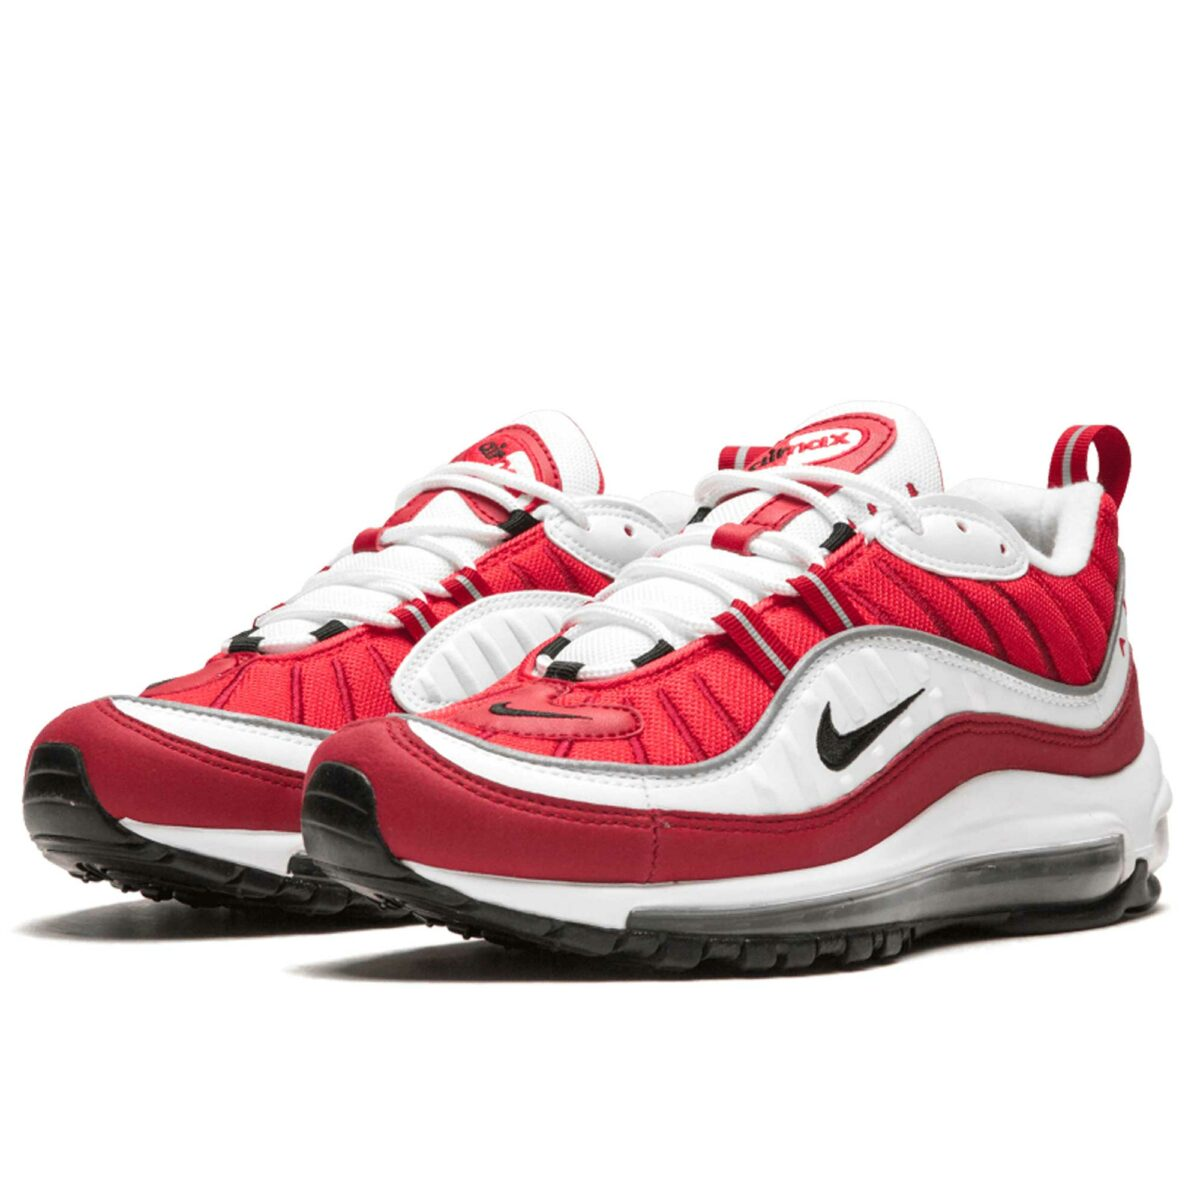 nike air max 98 red white AH6799_101 купить